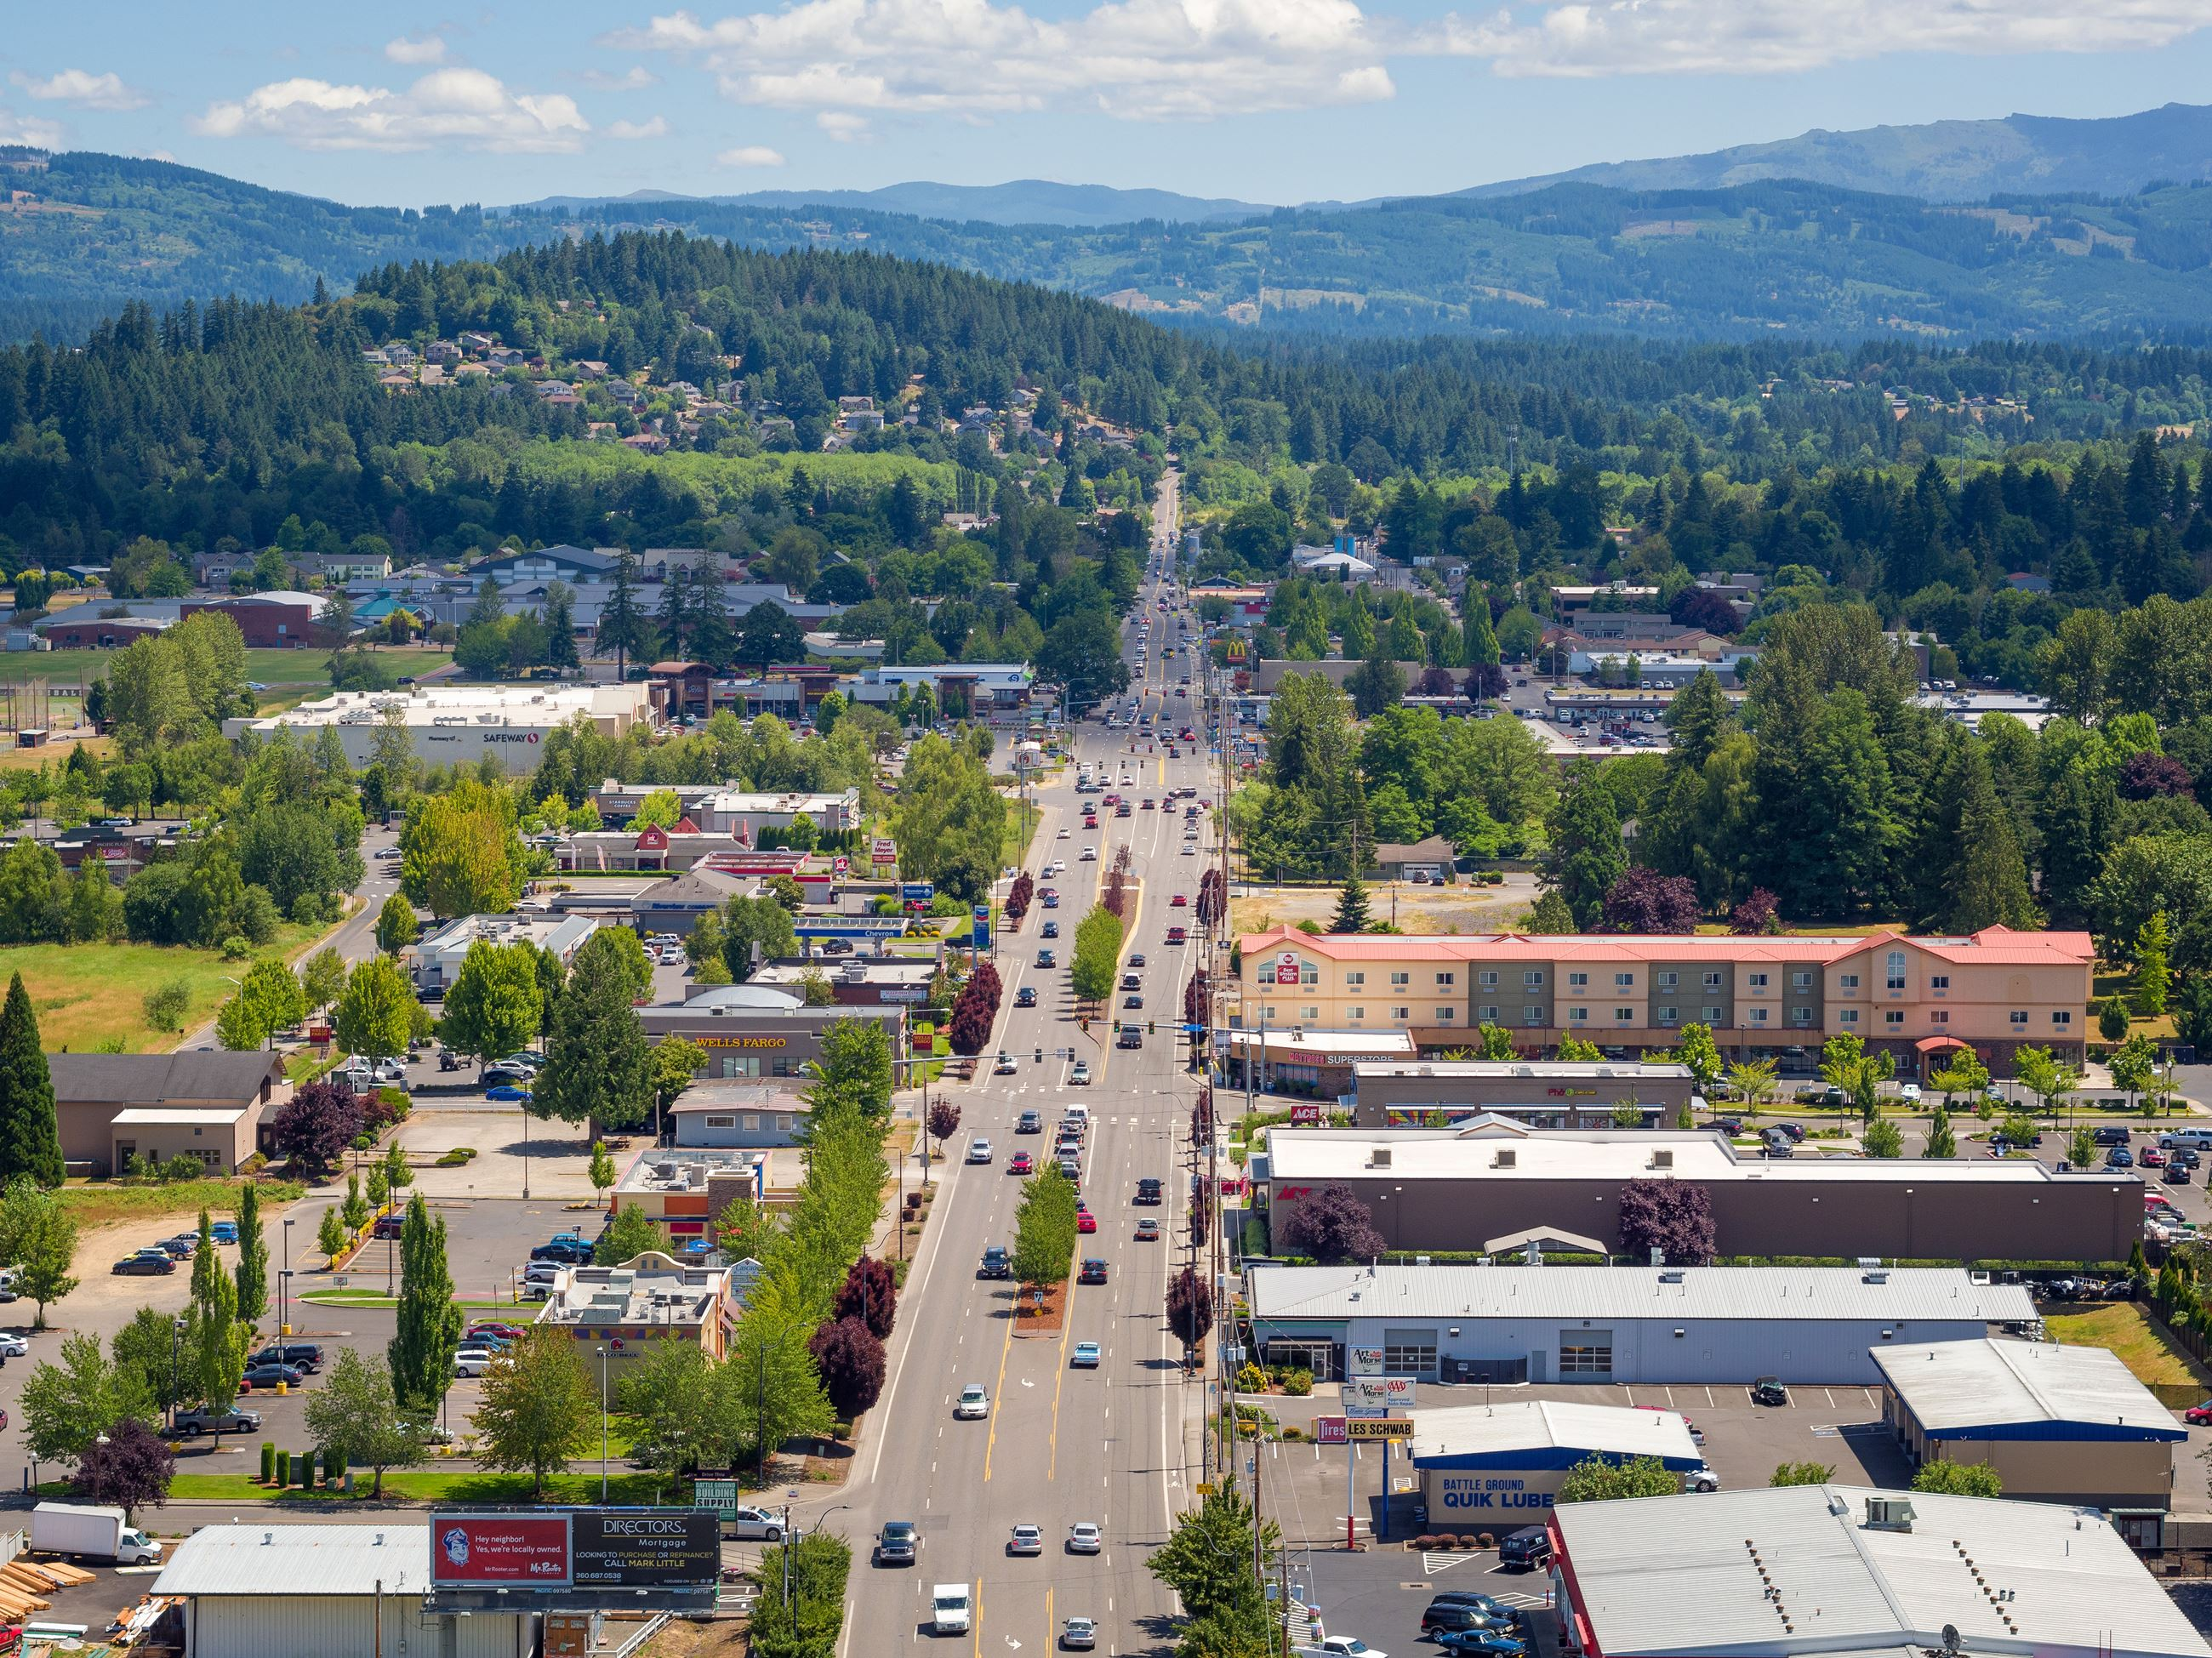 Aerial View of Battle Ground, WA